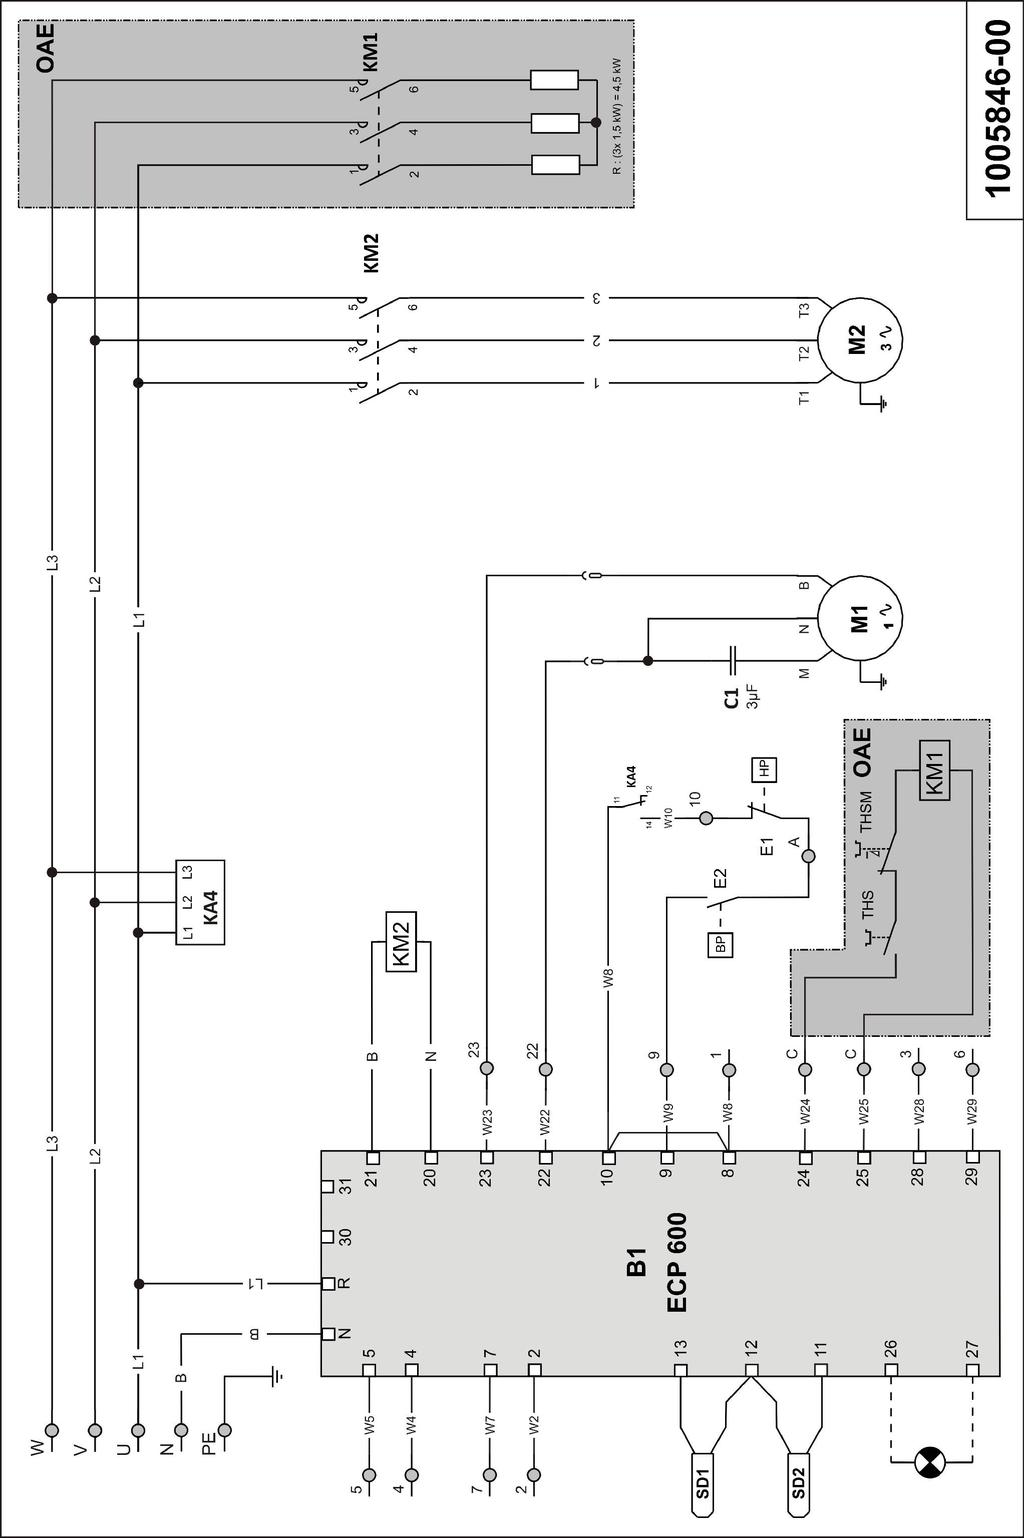 Installation Instructions Sirocco Air Dehumidifier For Indoor Ecp Wiring Diagram